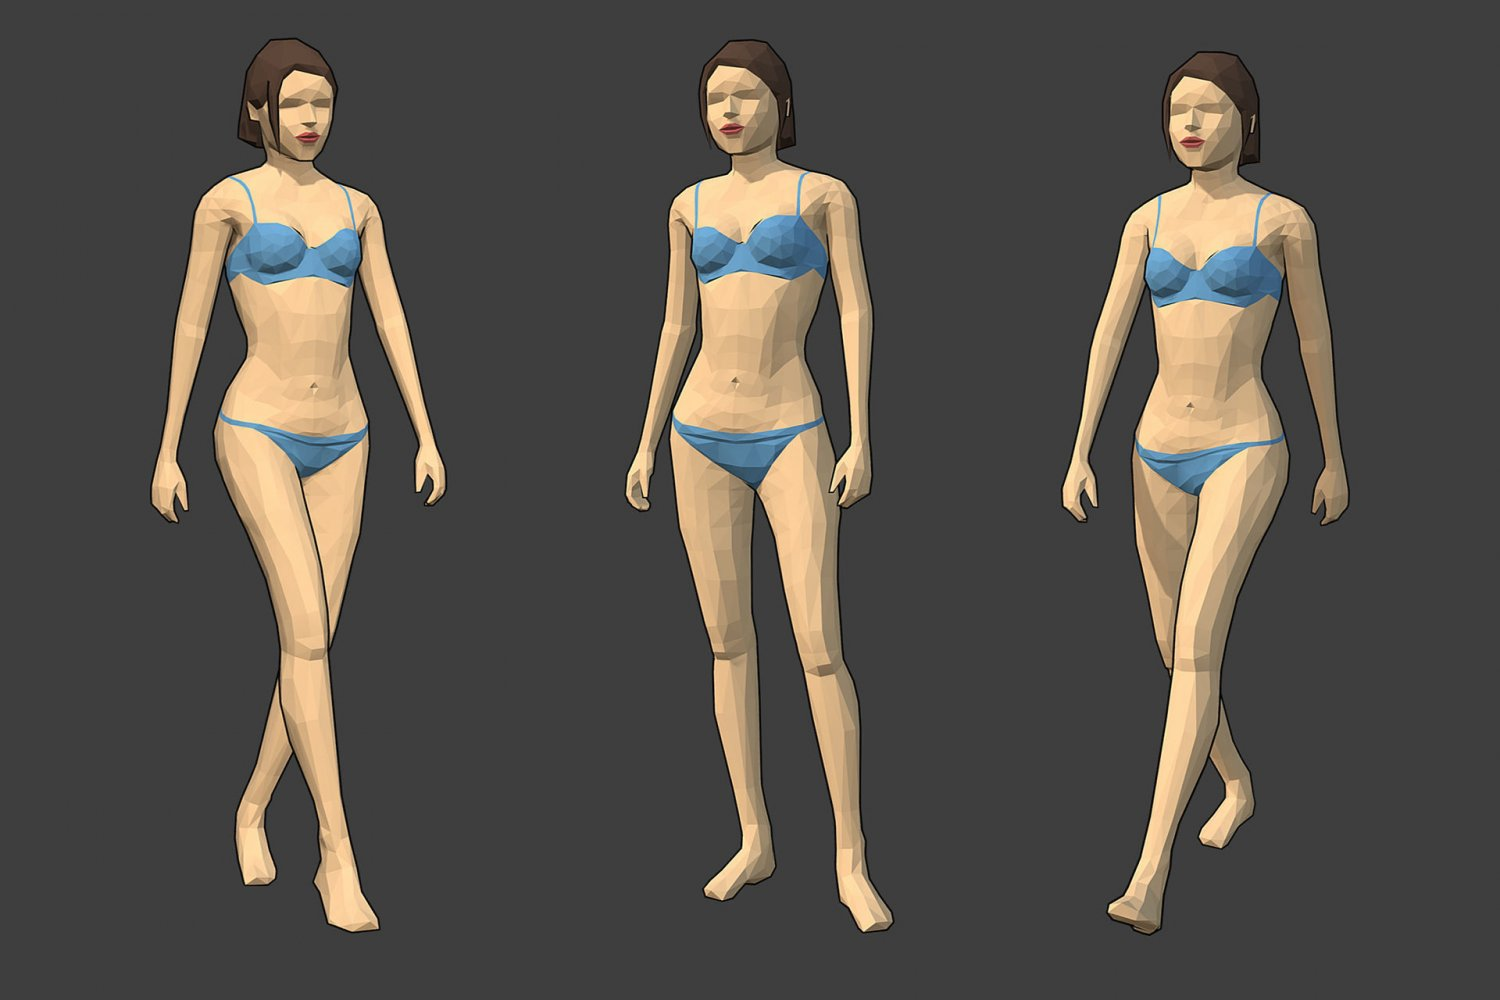 Rigged Lowpoly Female Character - Caren 3D Model in Woman 3DExport